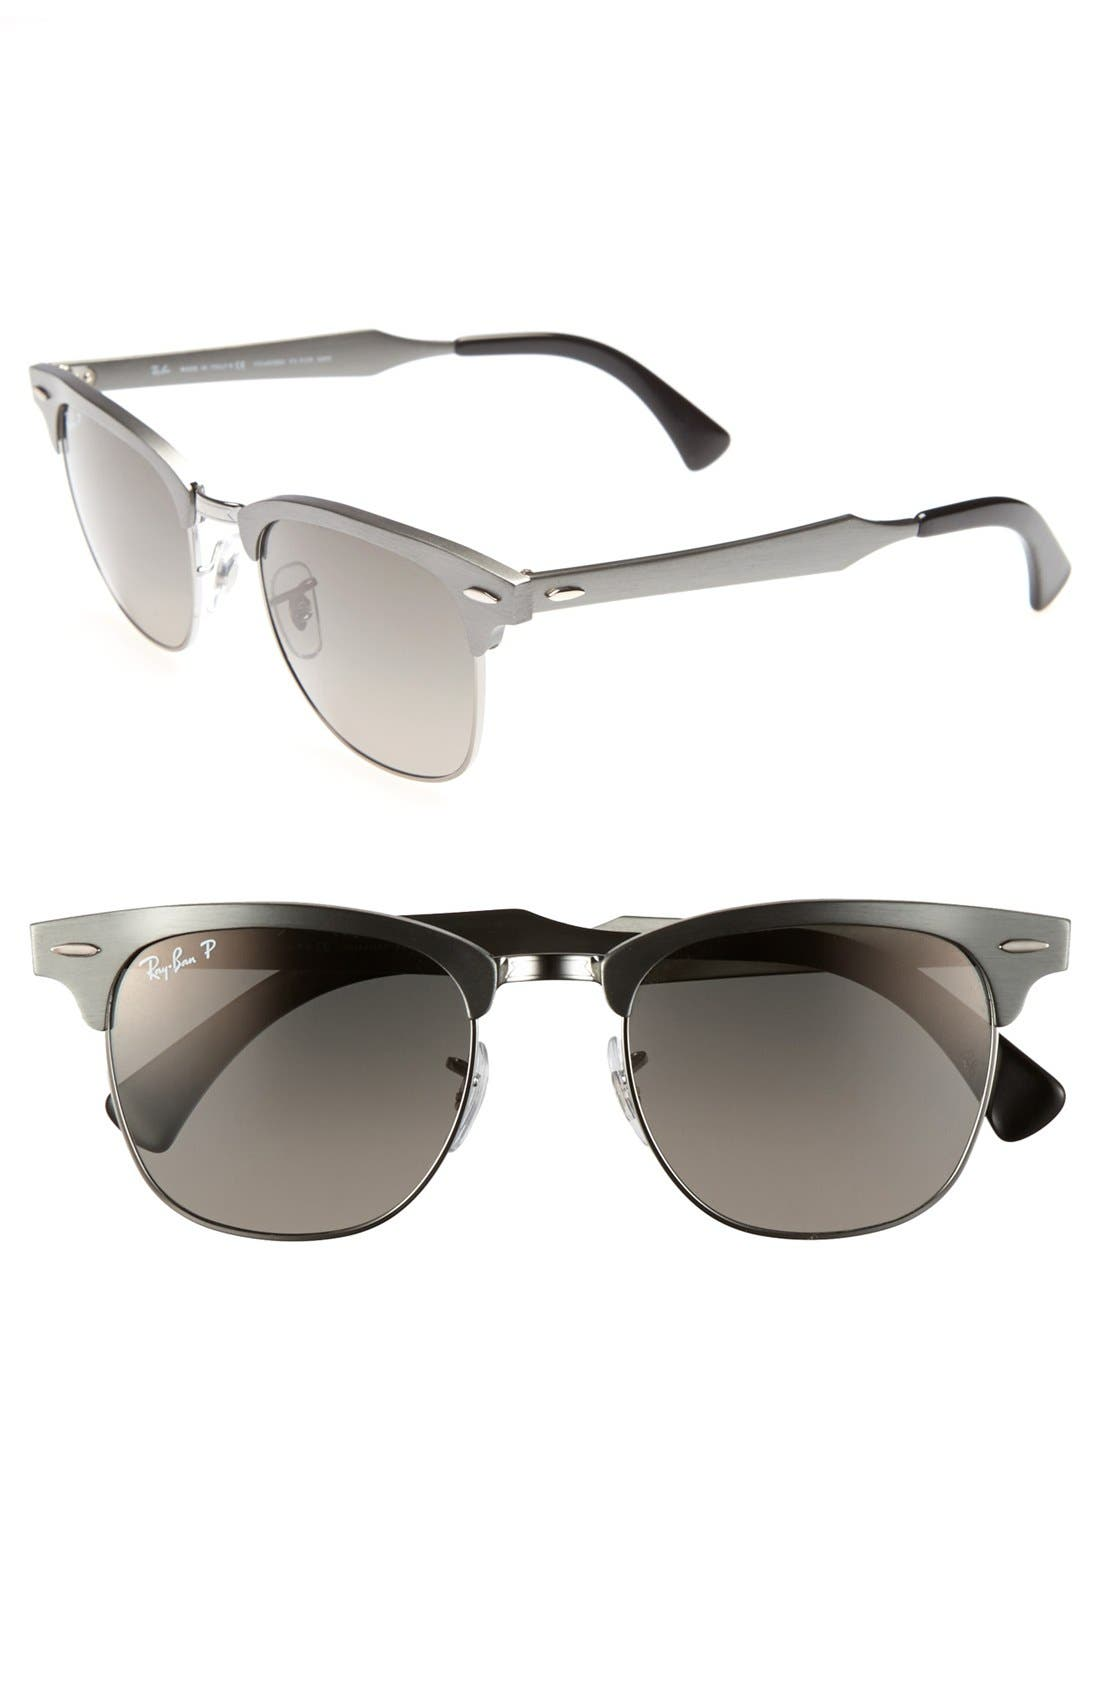 Main Image - Ray-Ban 'Clubmaster' 51mm Polarized Sunglasses